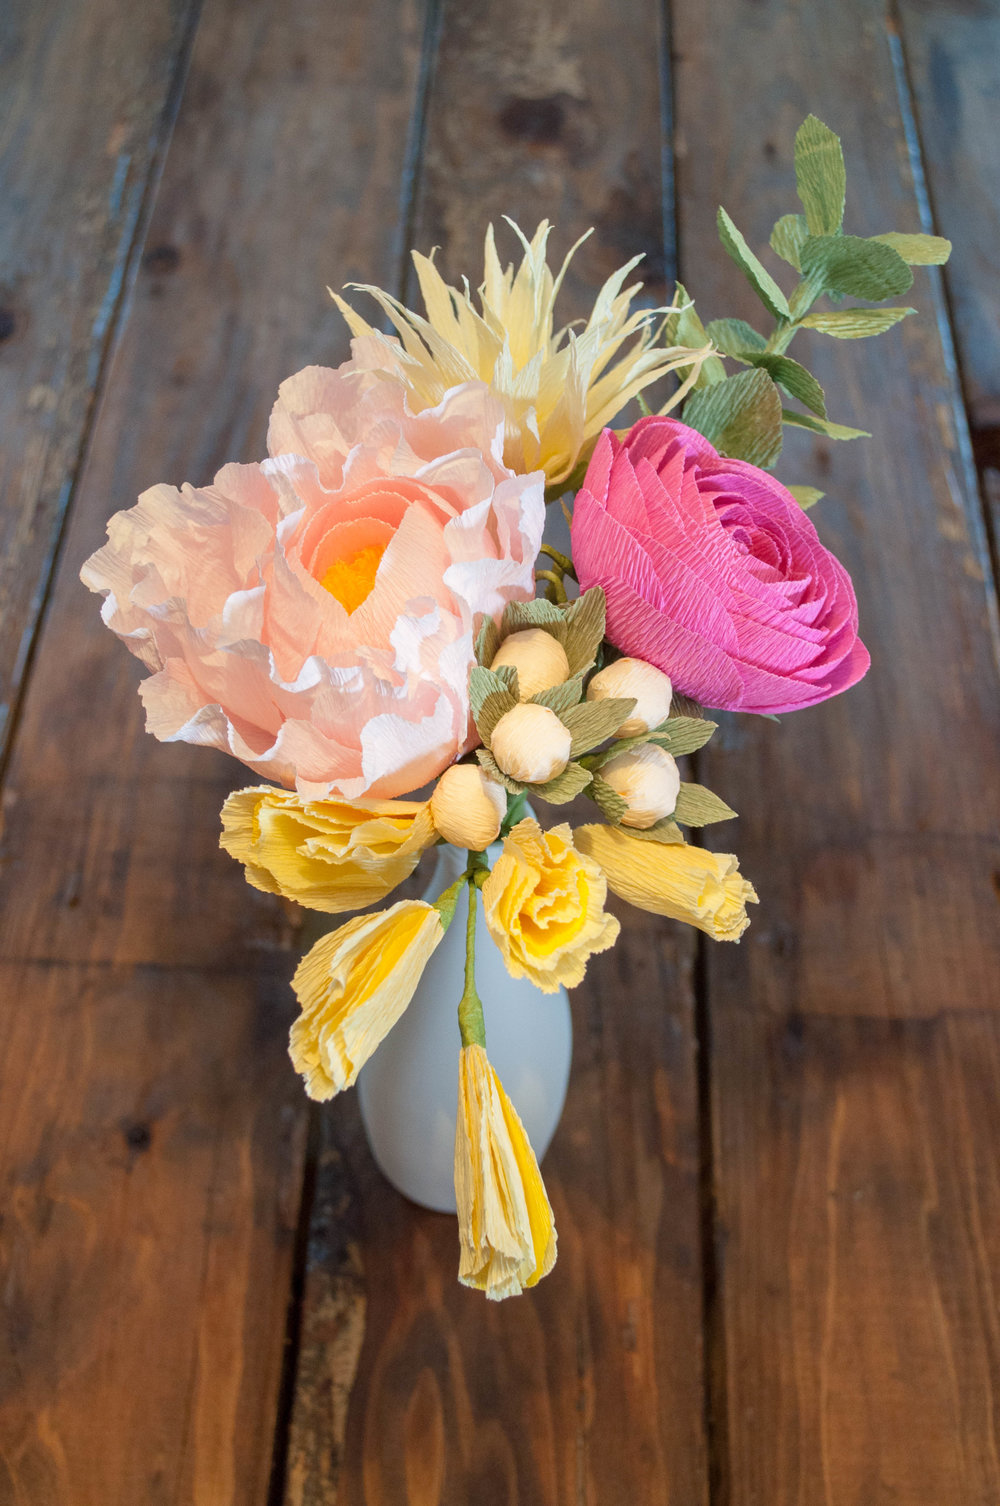 Build this 6-stem bouquet! Recipe: Blush peony, yellow water lily, pink ranunculus, yellow sweet pea, cream berries, eucalyptus.